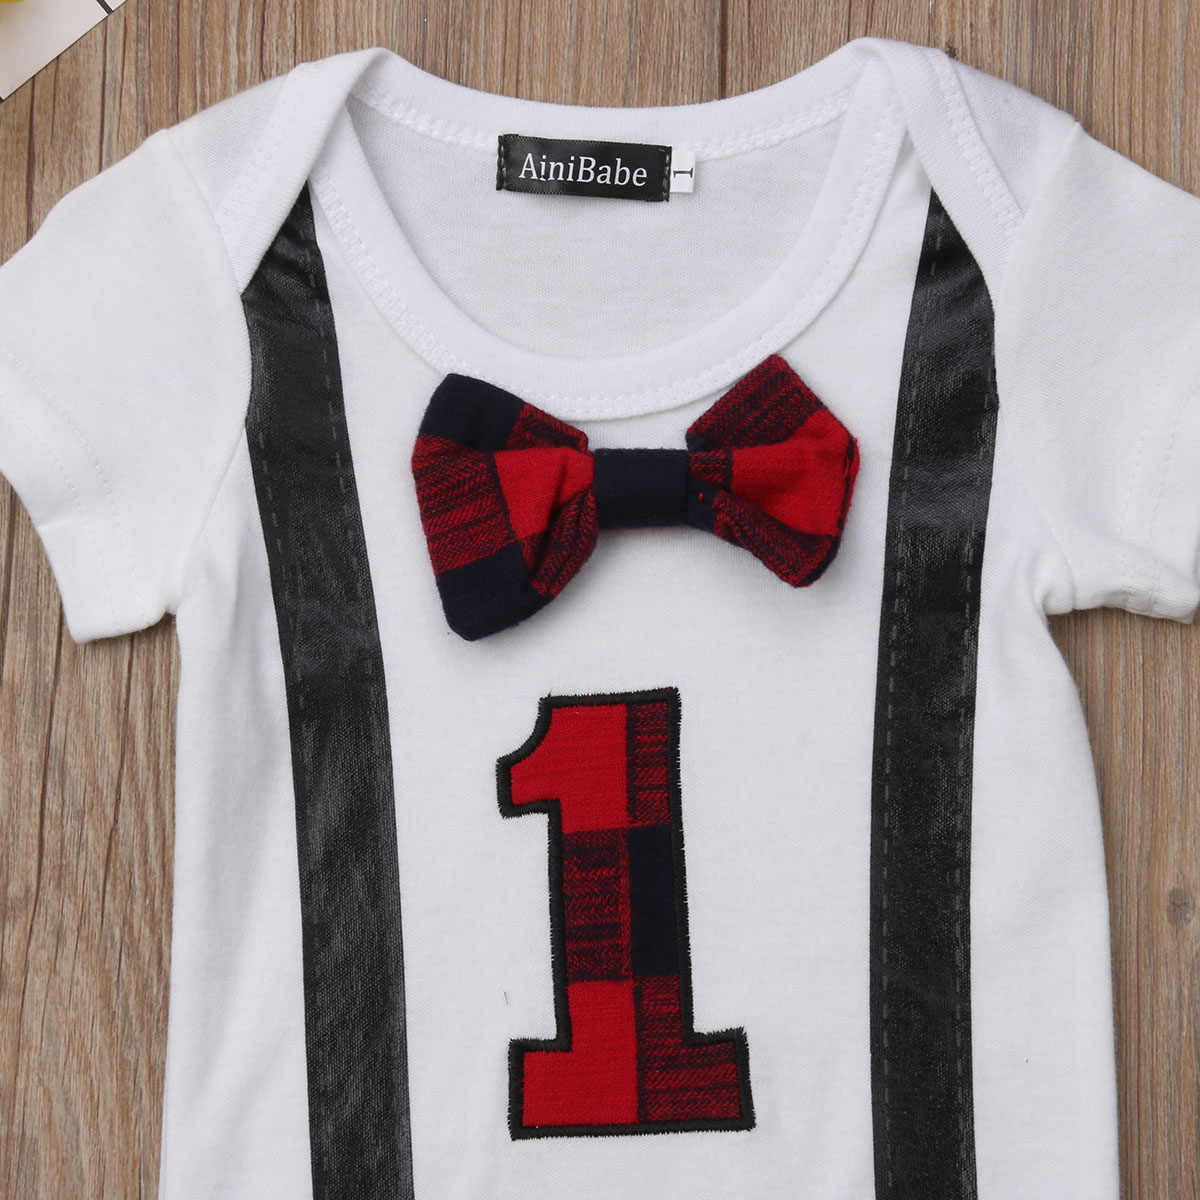 a61466fb498 1st Birthday Party Dress For Baby Boy - naturallycurlye.com